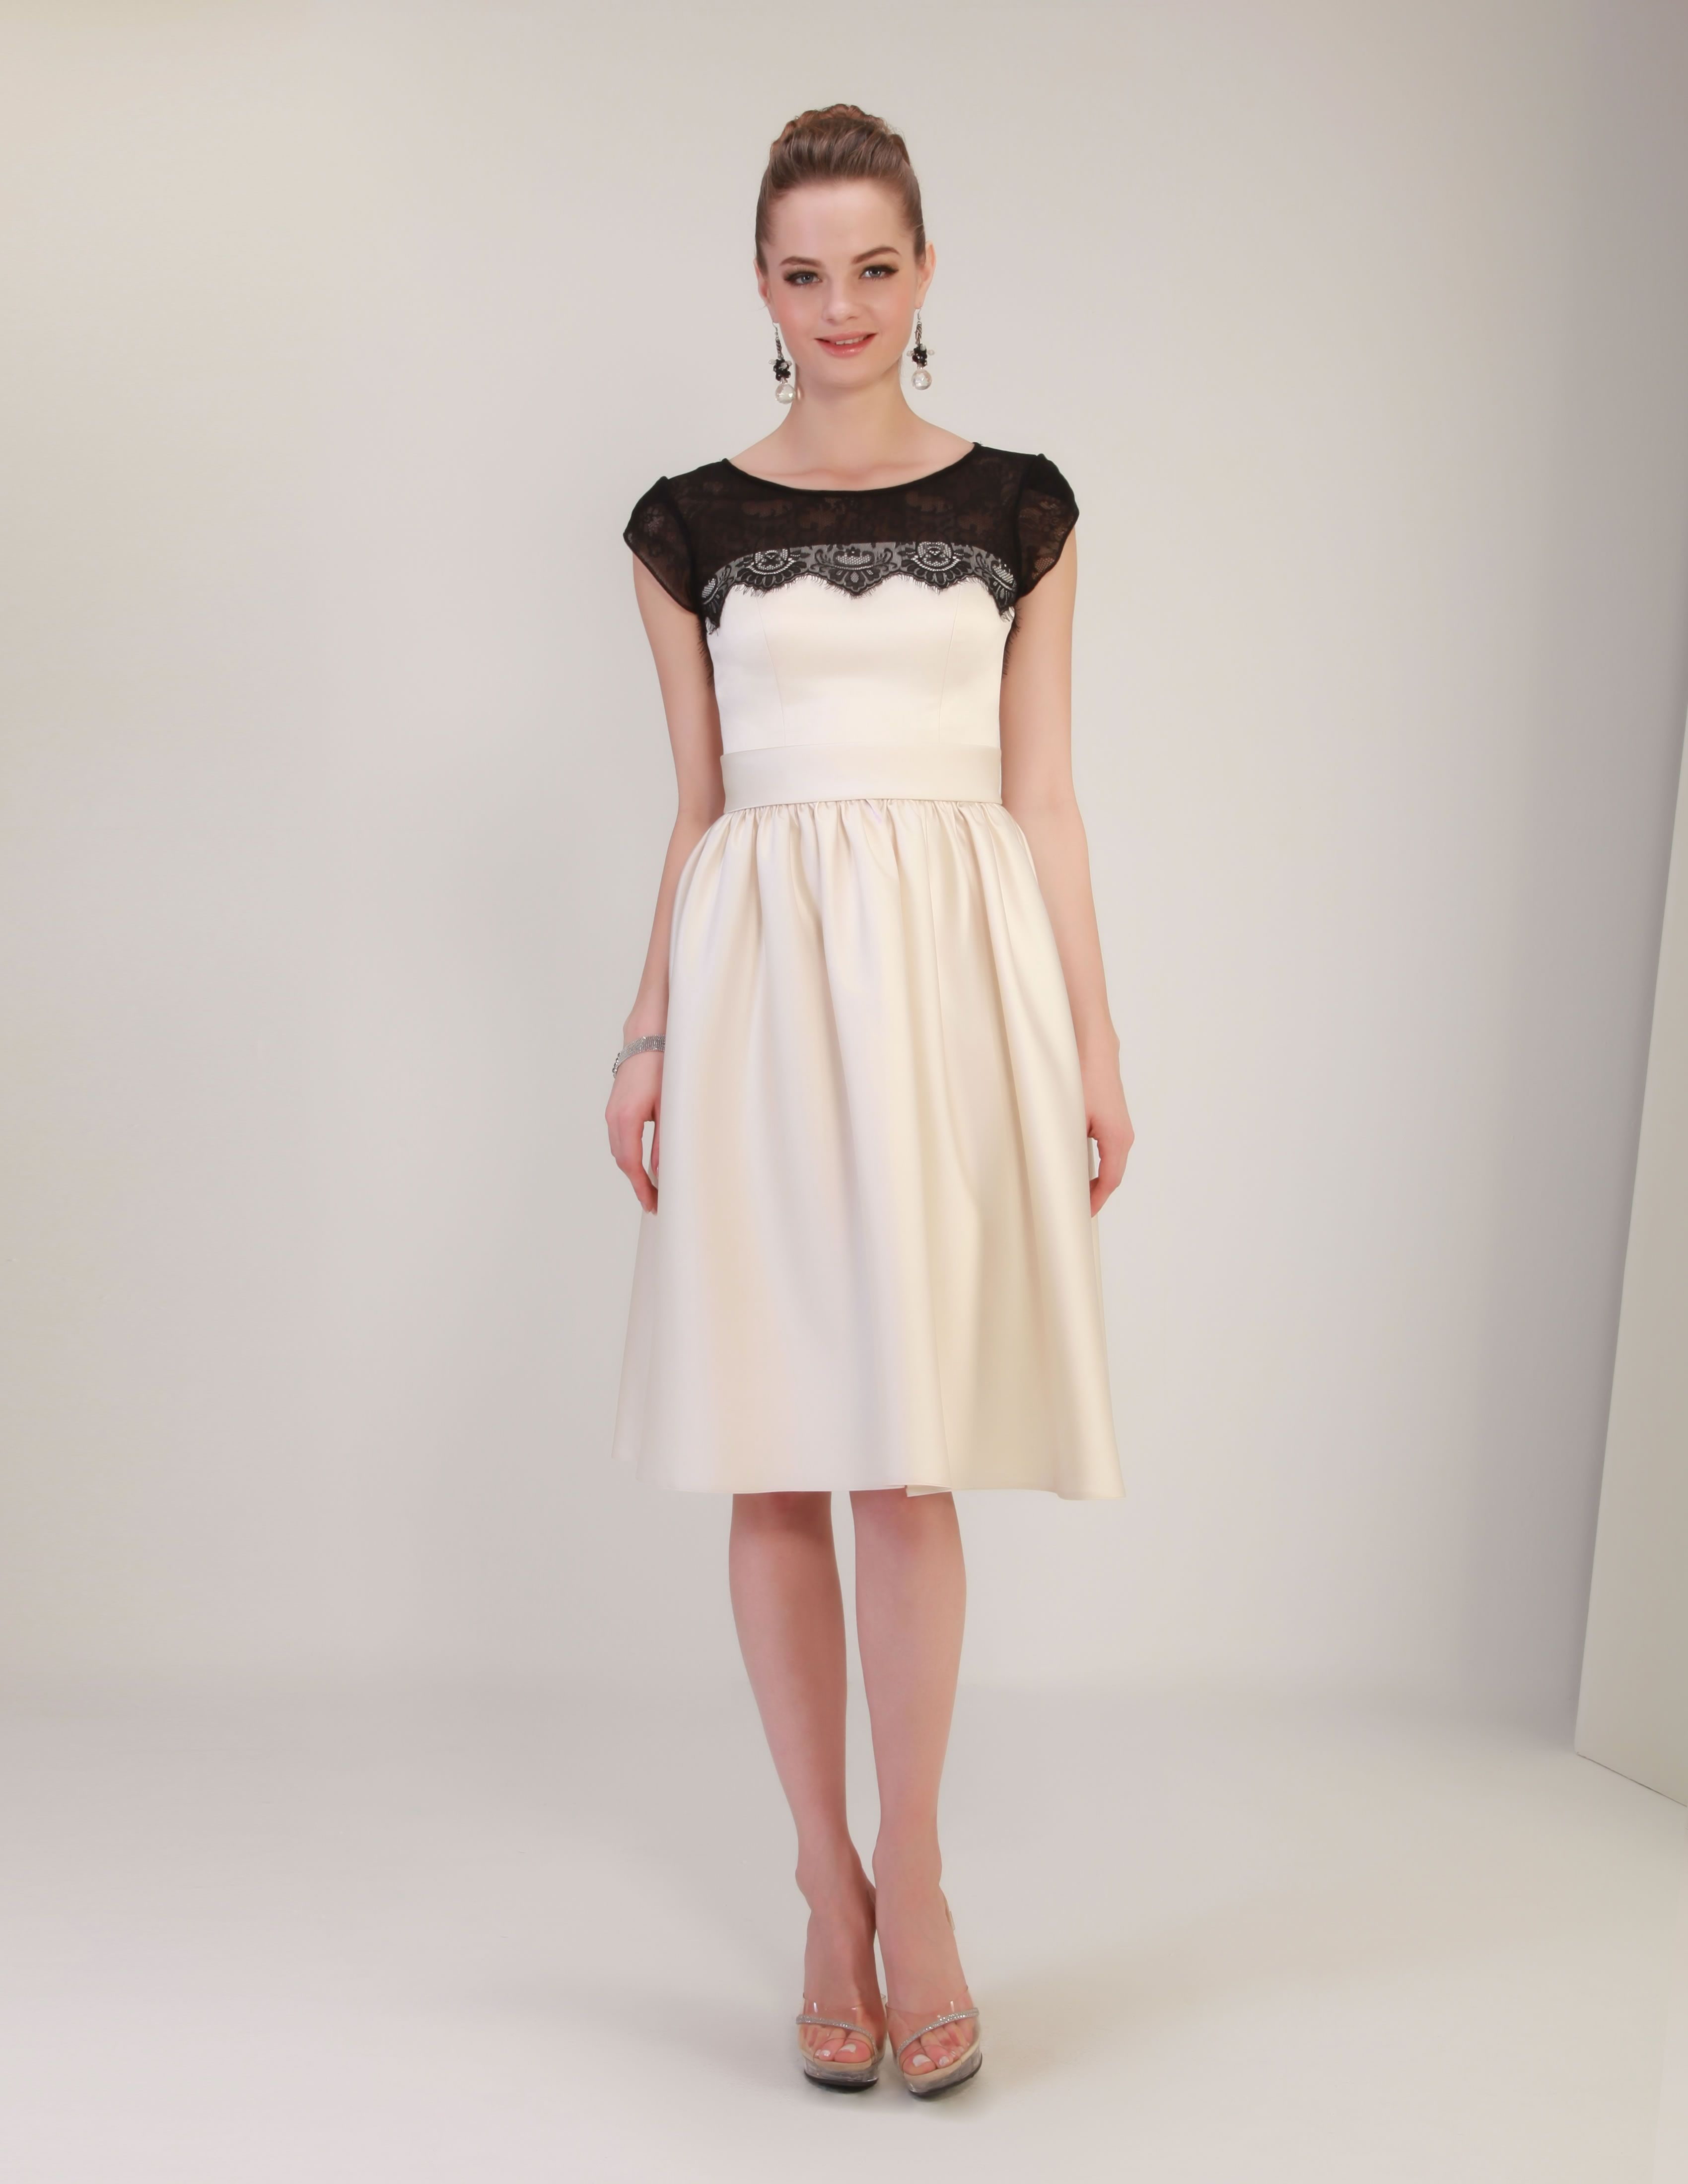 Conservative wedding dresses  Prom  A Dressy Occasion  Modest Wedding Dresses  Let us help your